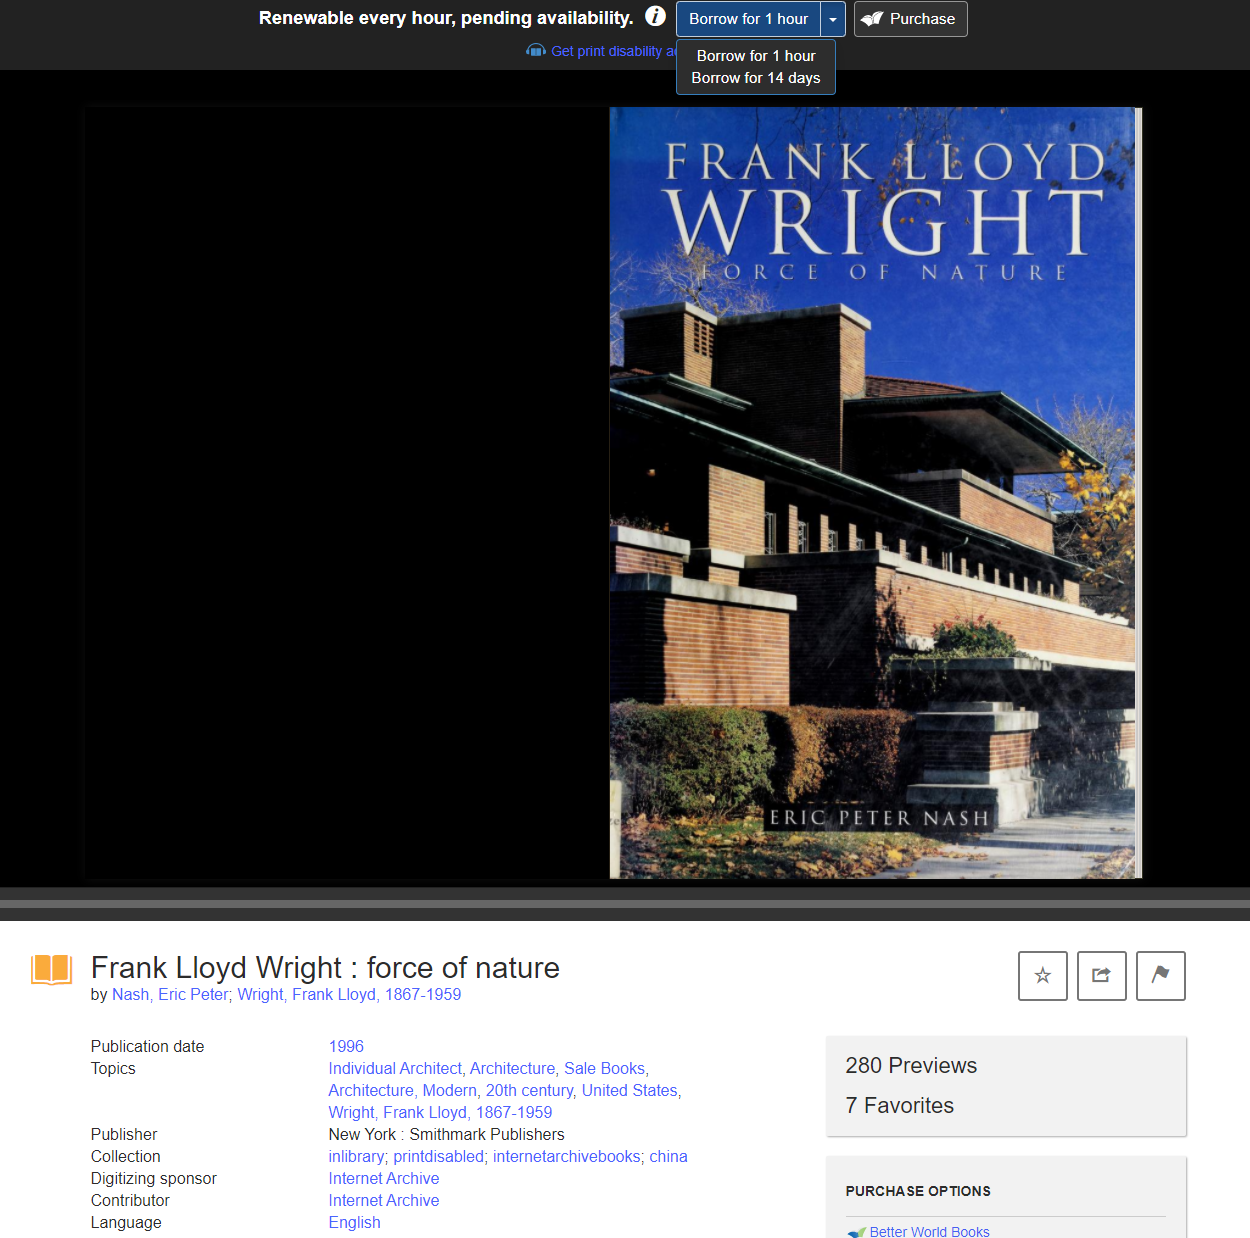 Screenshot of book 'Frank Lloyd Wright Force of Nature""